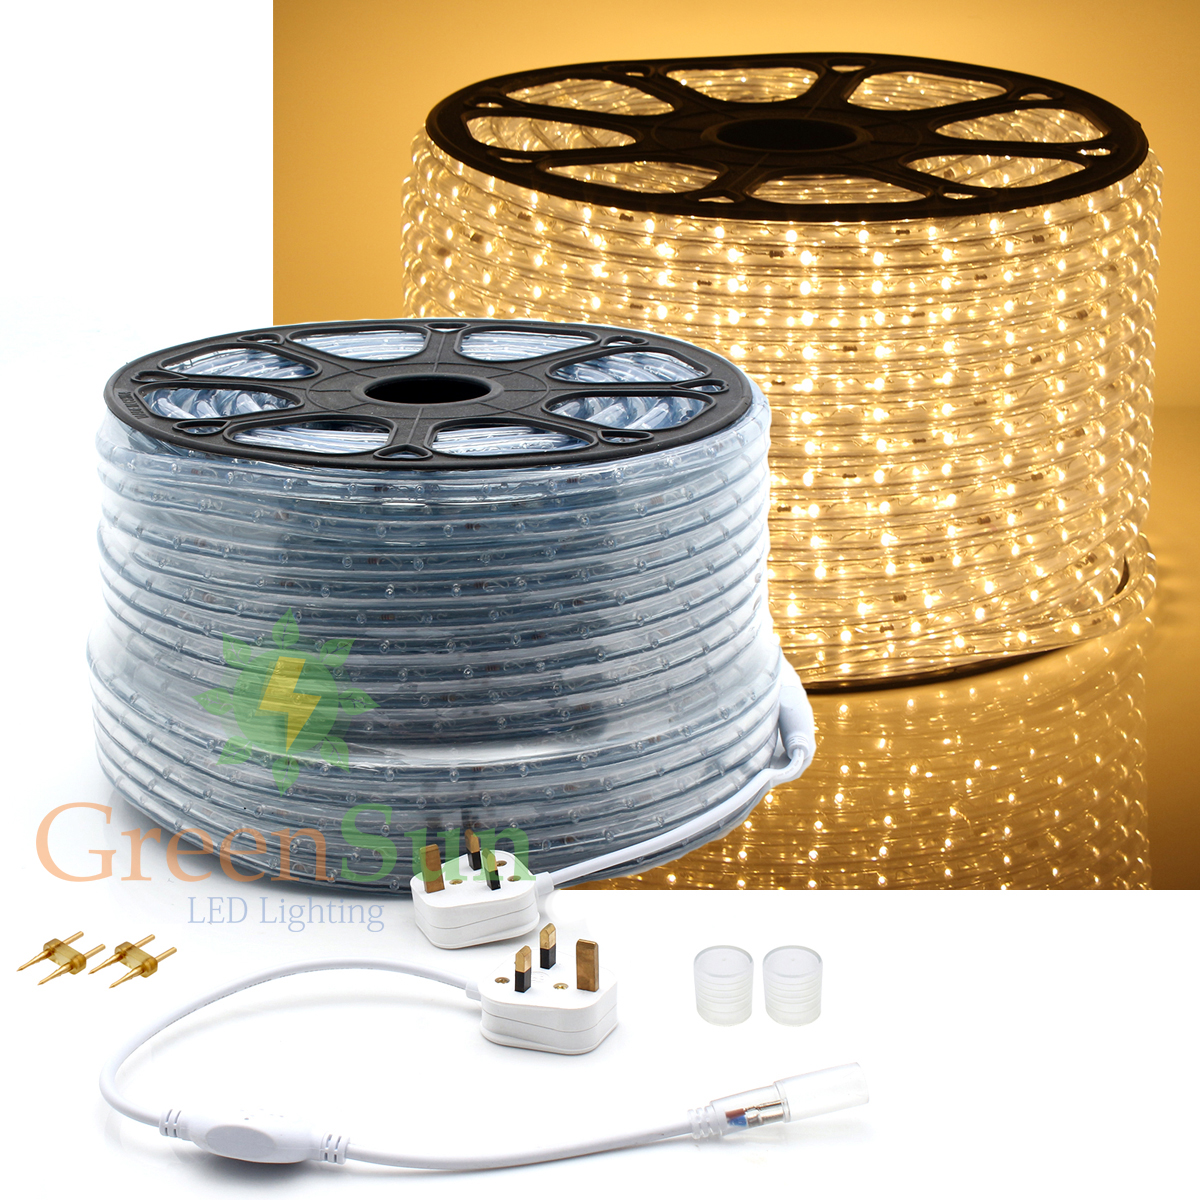 20-50M M36 leds/m 2-Wire Warm White 220V Waterproof IP68 LED Strip Light Home Garden Xmas Lamp LED Strip Light With Power line